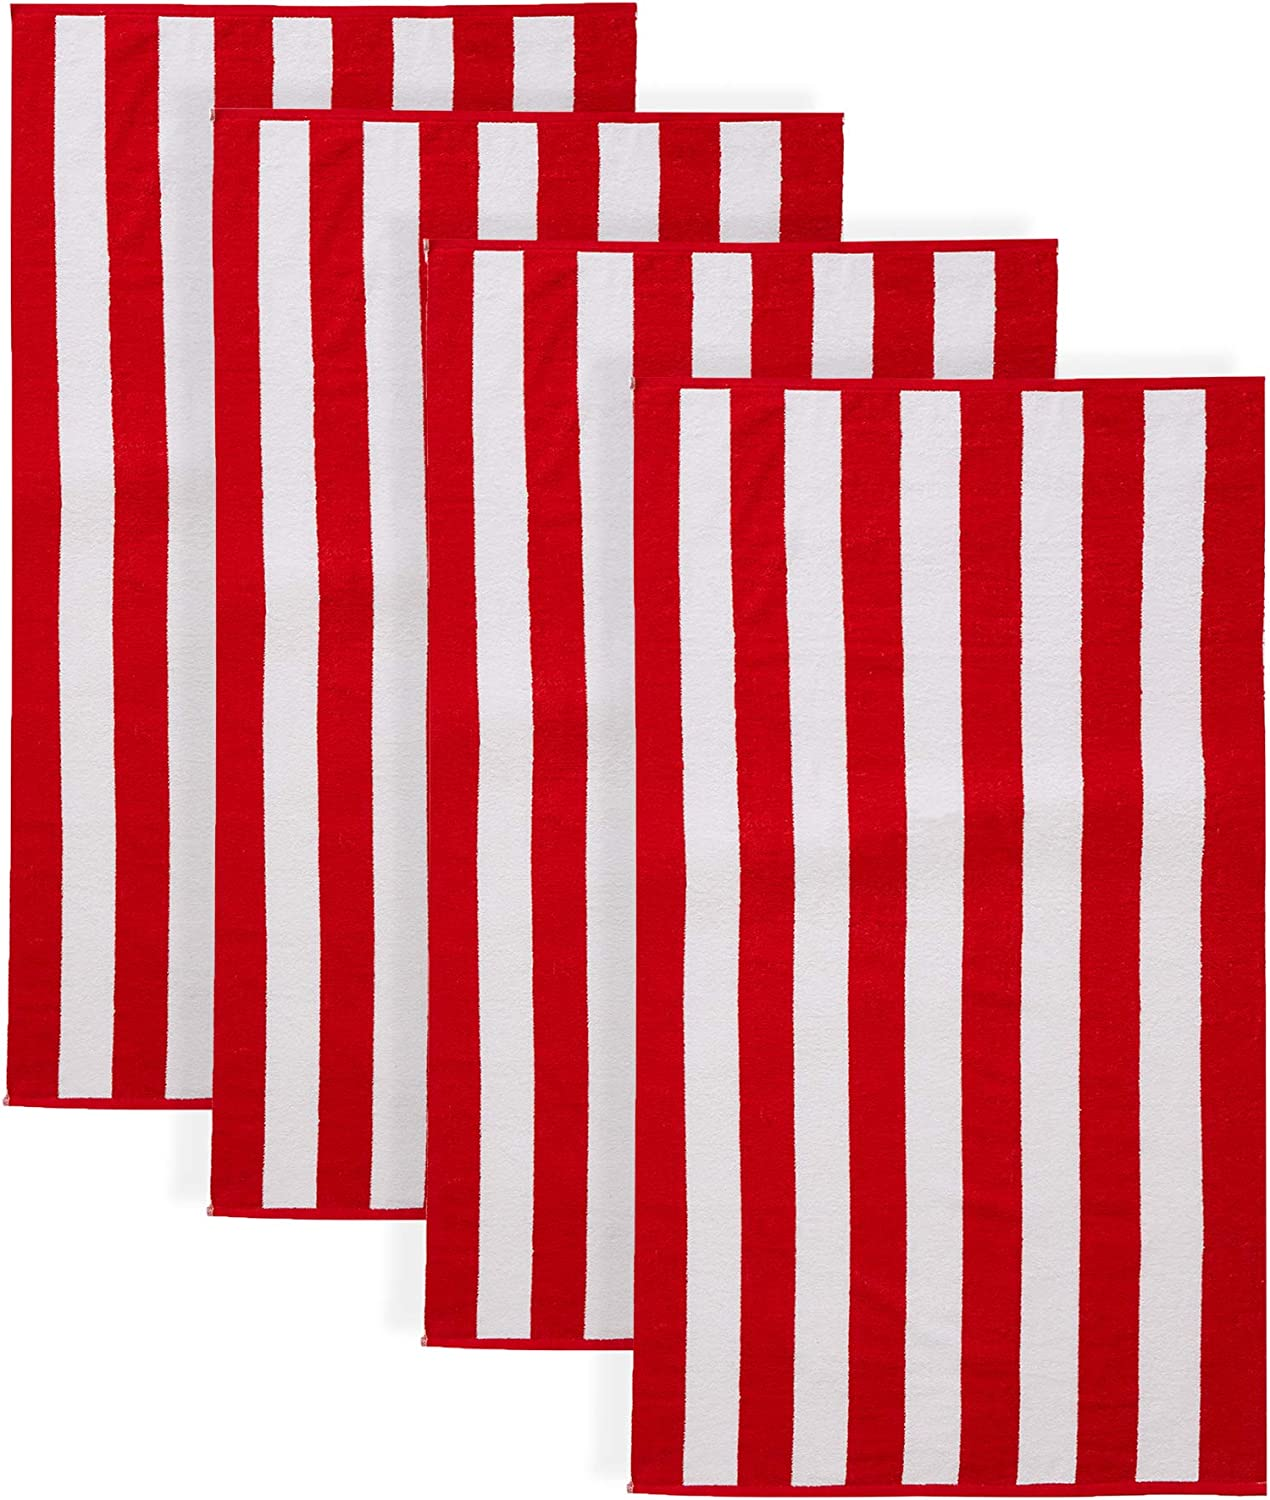 100% Cotton Cabana Stripe Beach Towel. Soft Absorbent Quick Dry Towel Set. Diani Collection. (4 Pack, Red)